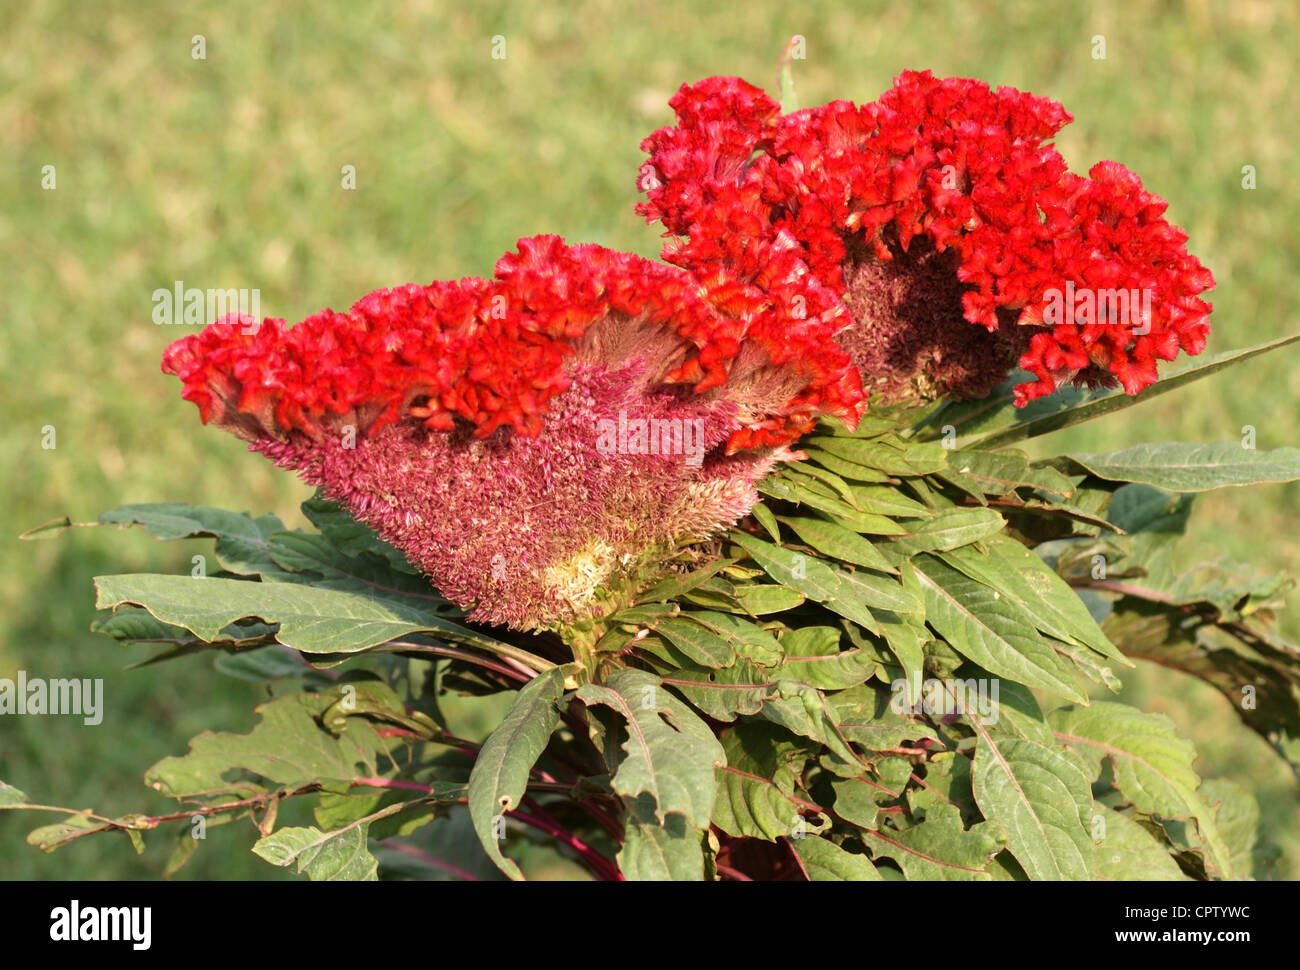 vibrant red flower named plumed cockscomb, seen in India - Stock Image